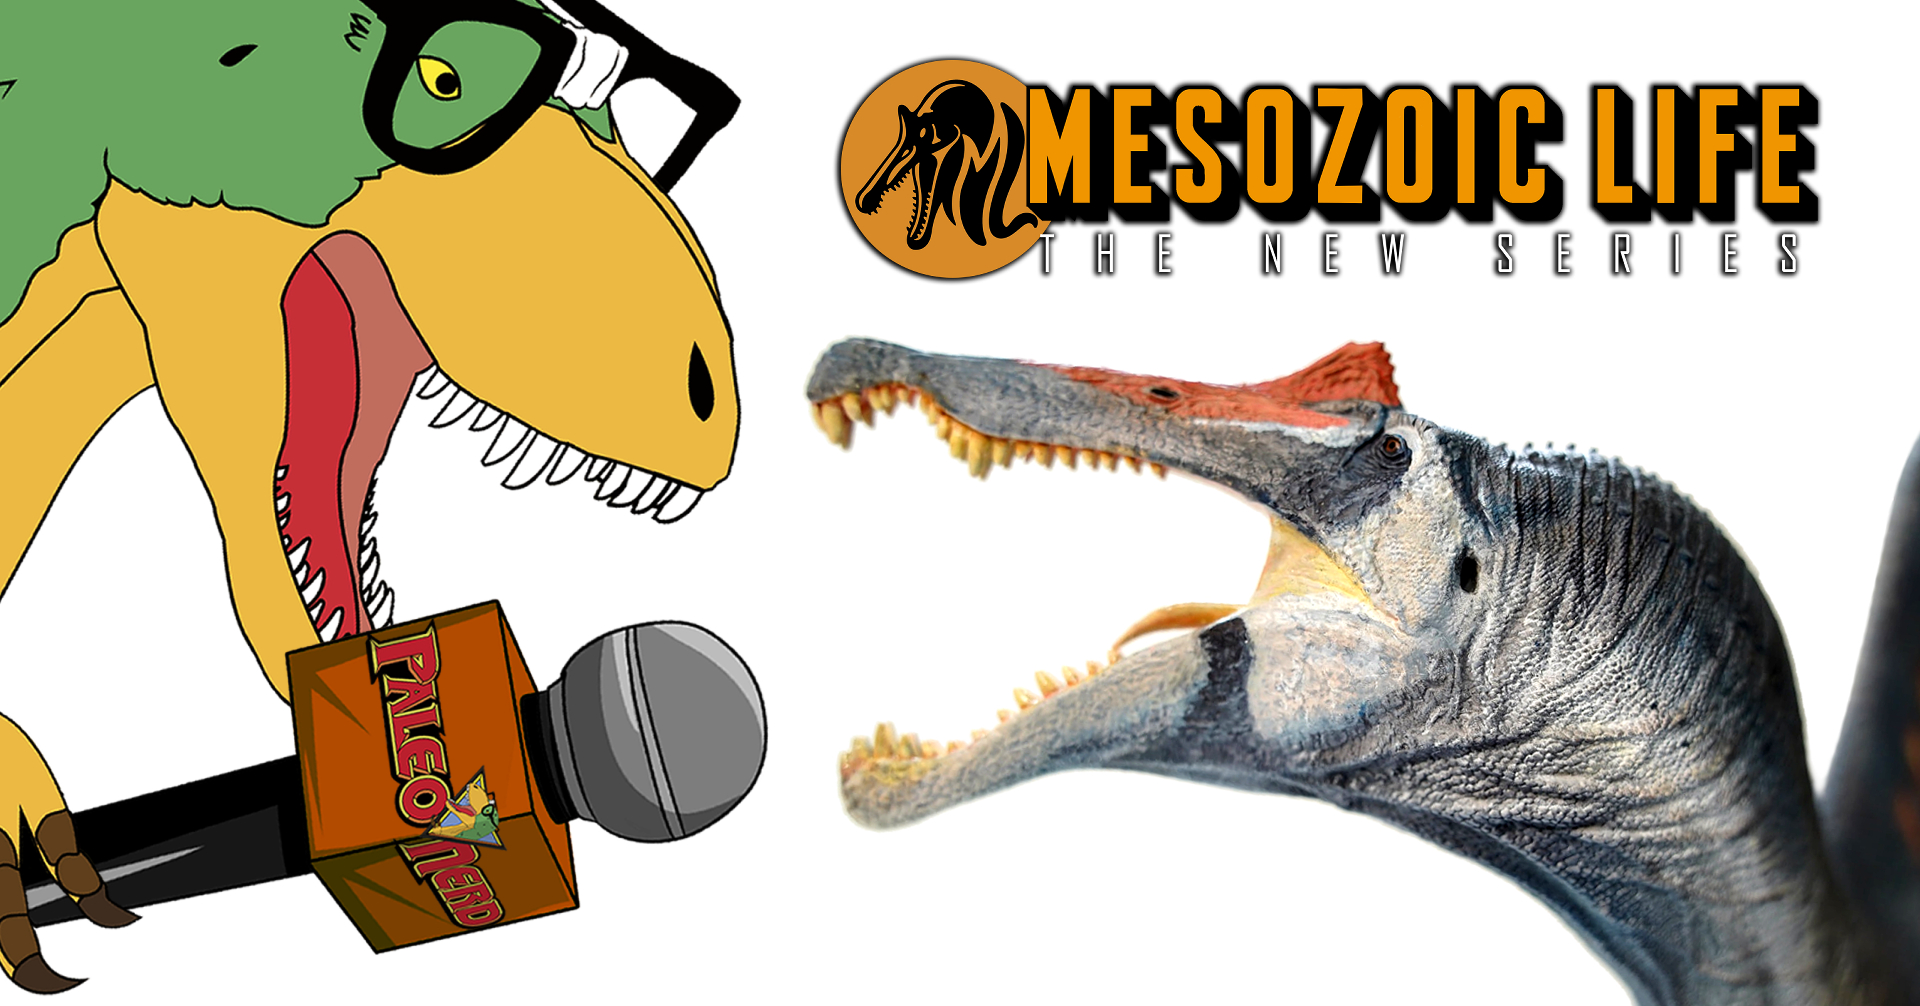 MESOZOIC LIFE PROJECT: Interview with Kevin Miguel